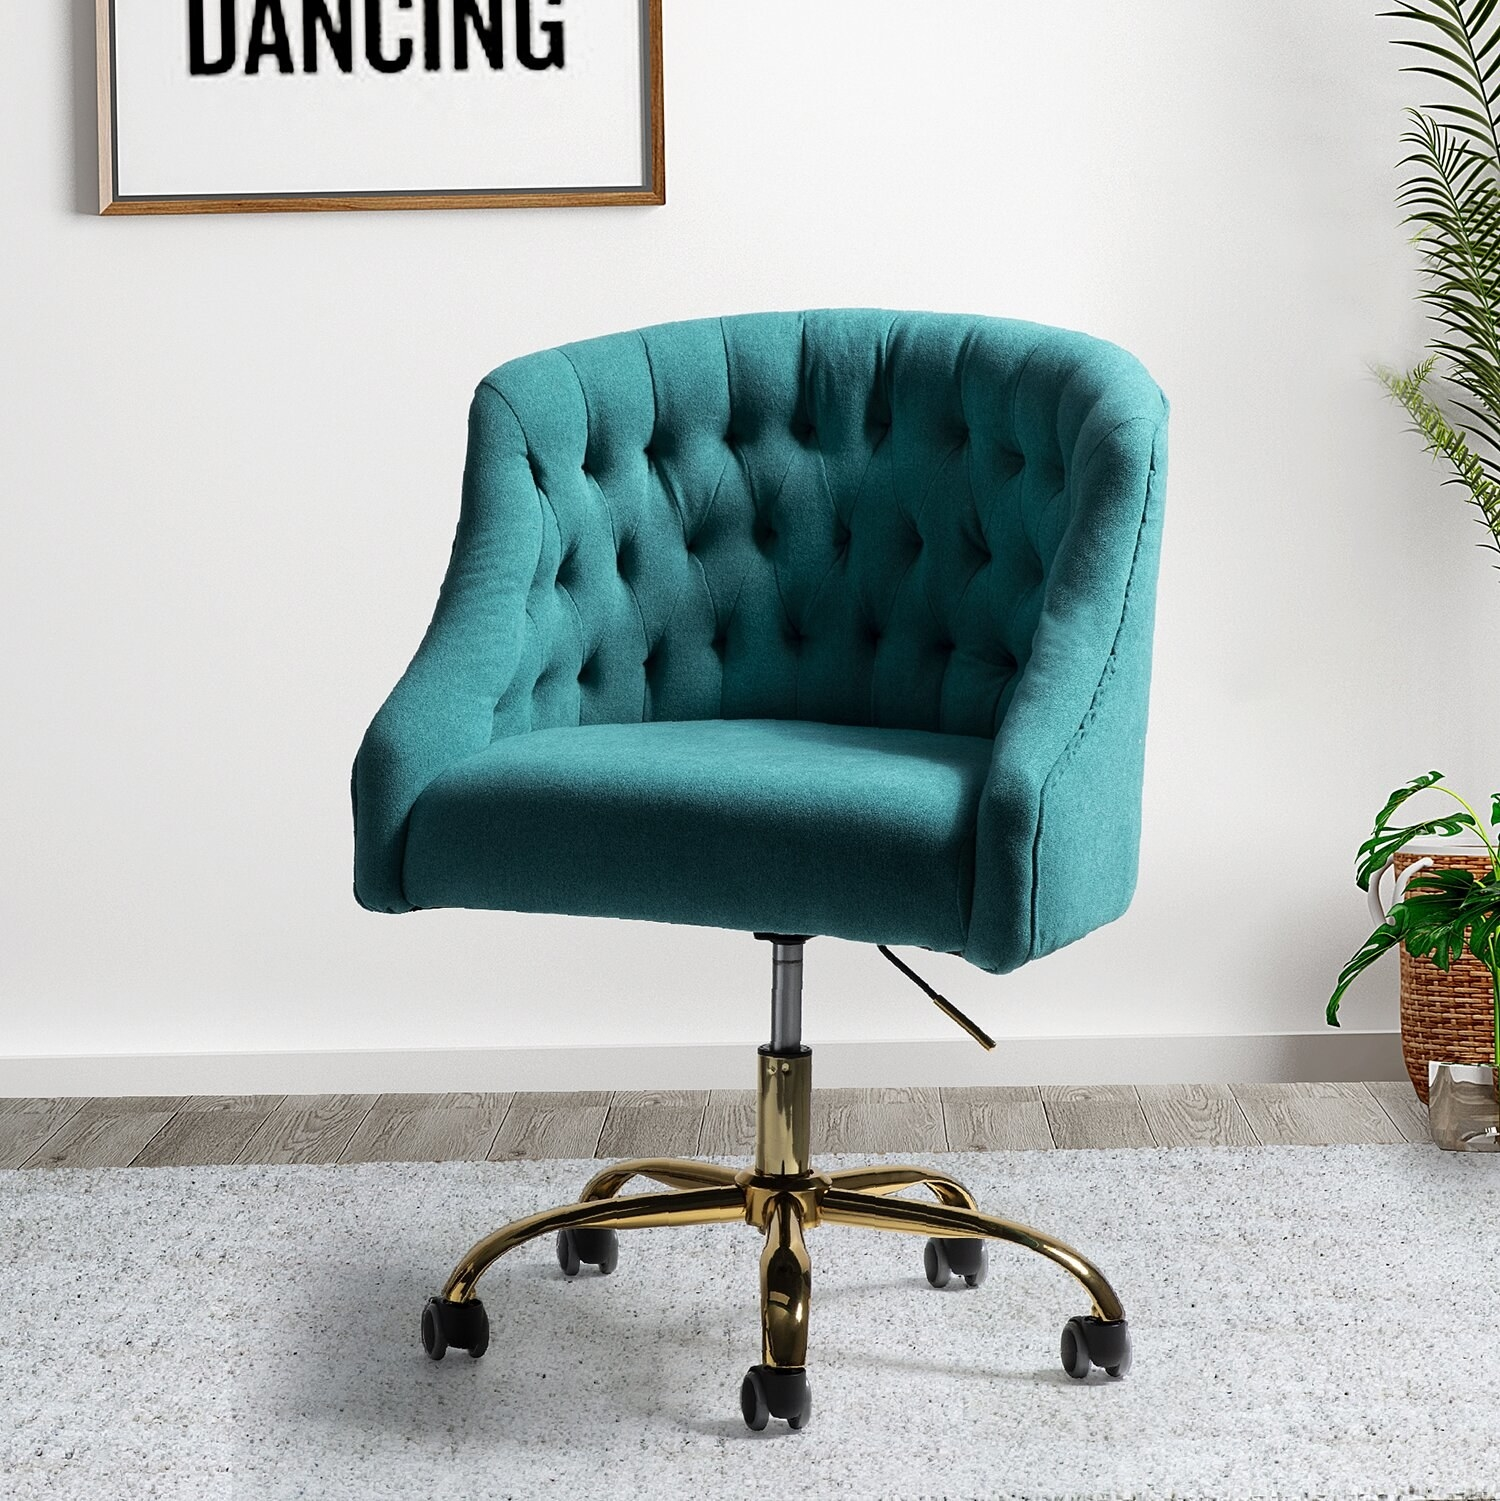 turquoise chair in an empty room